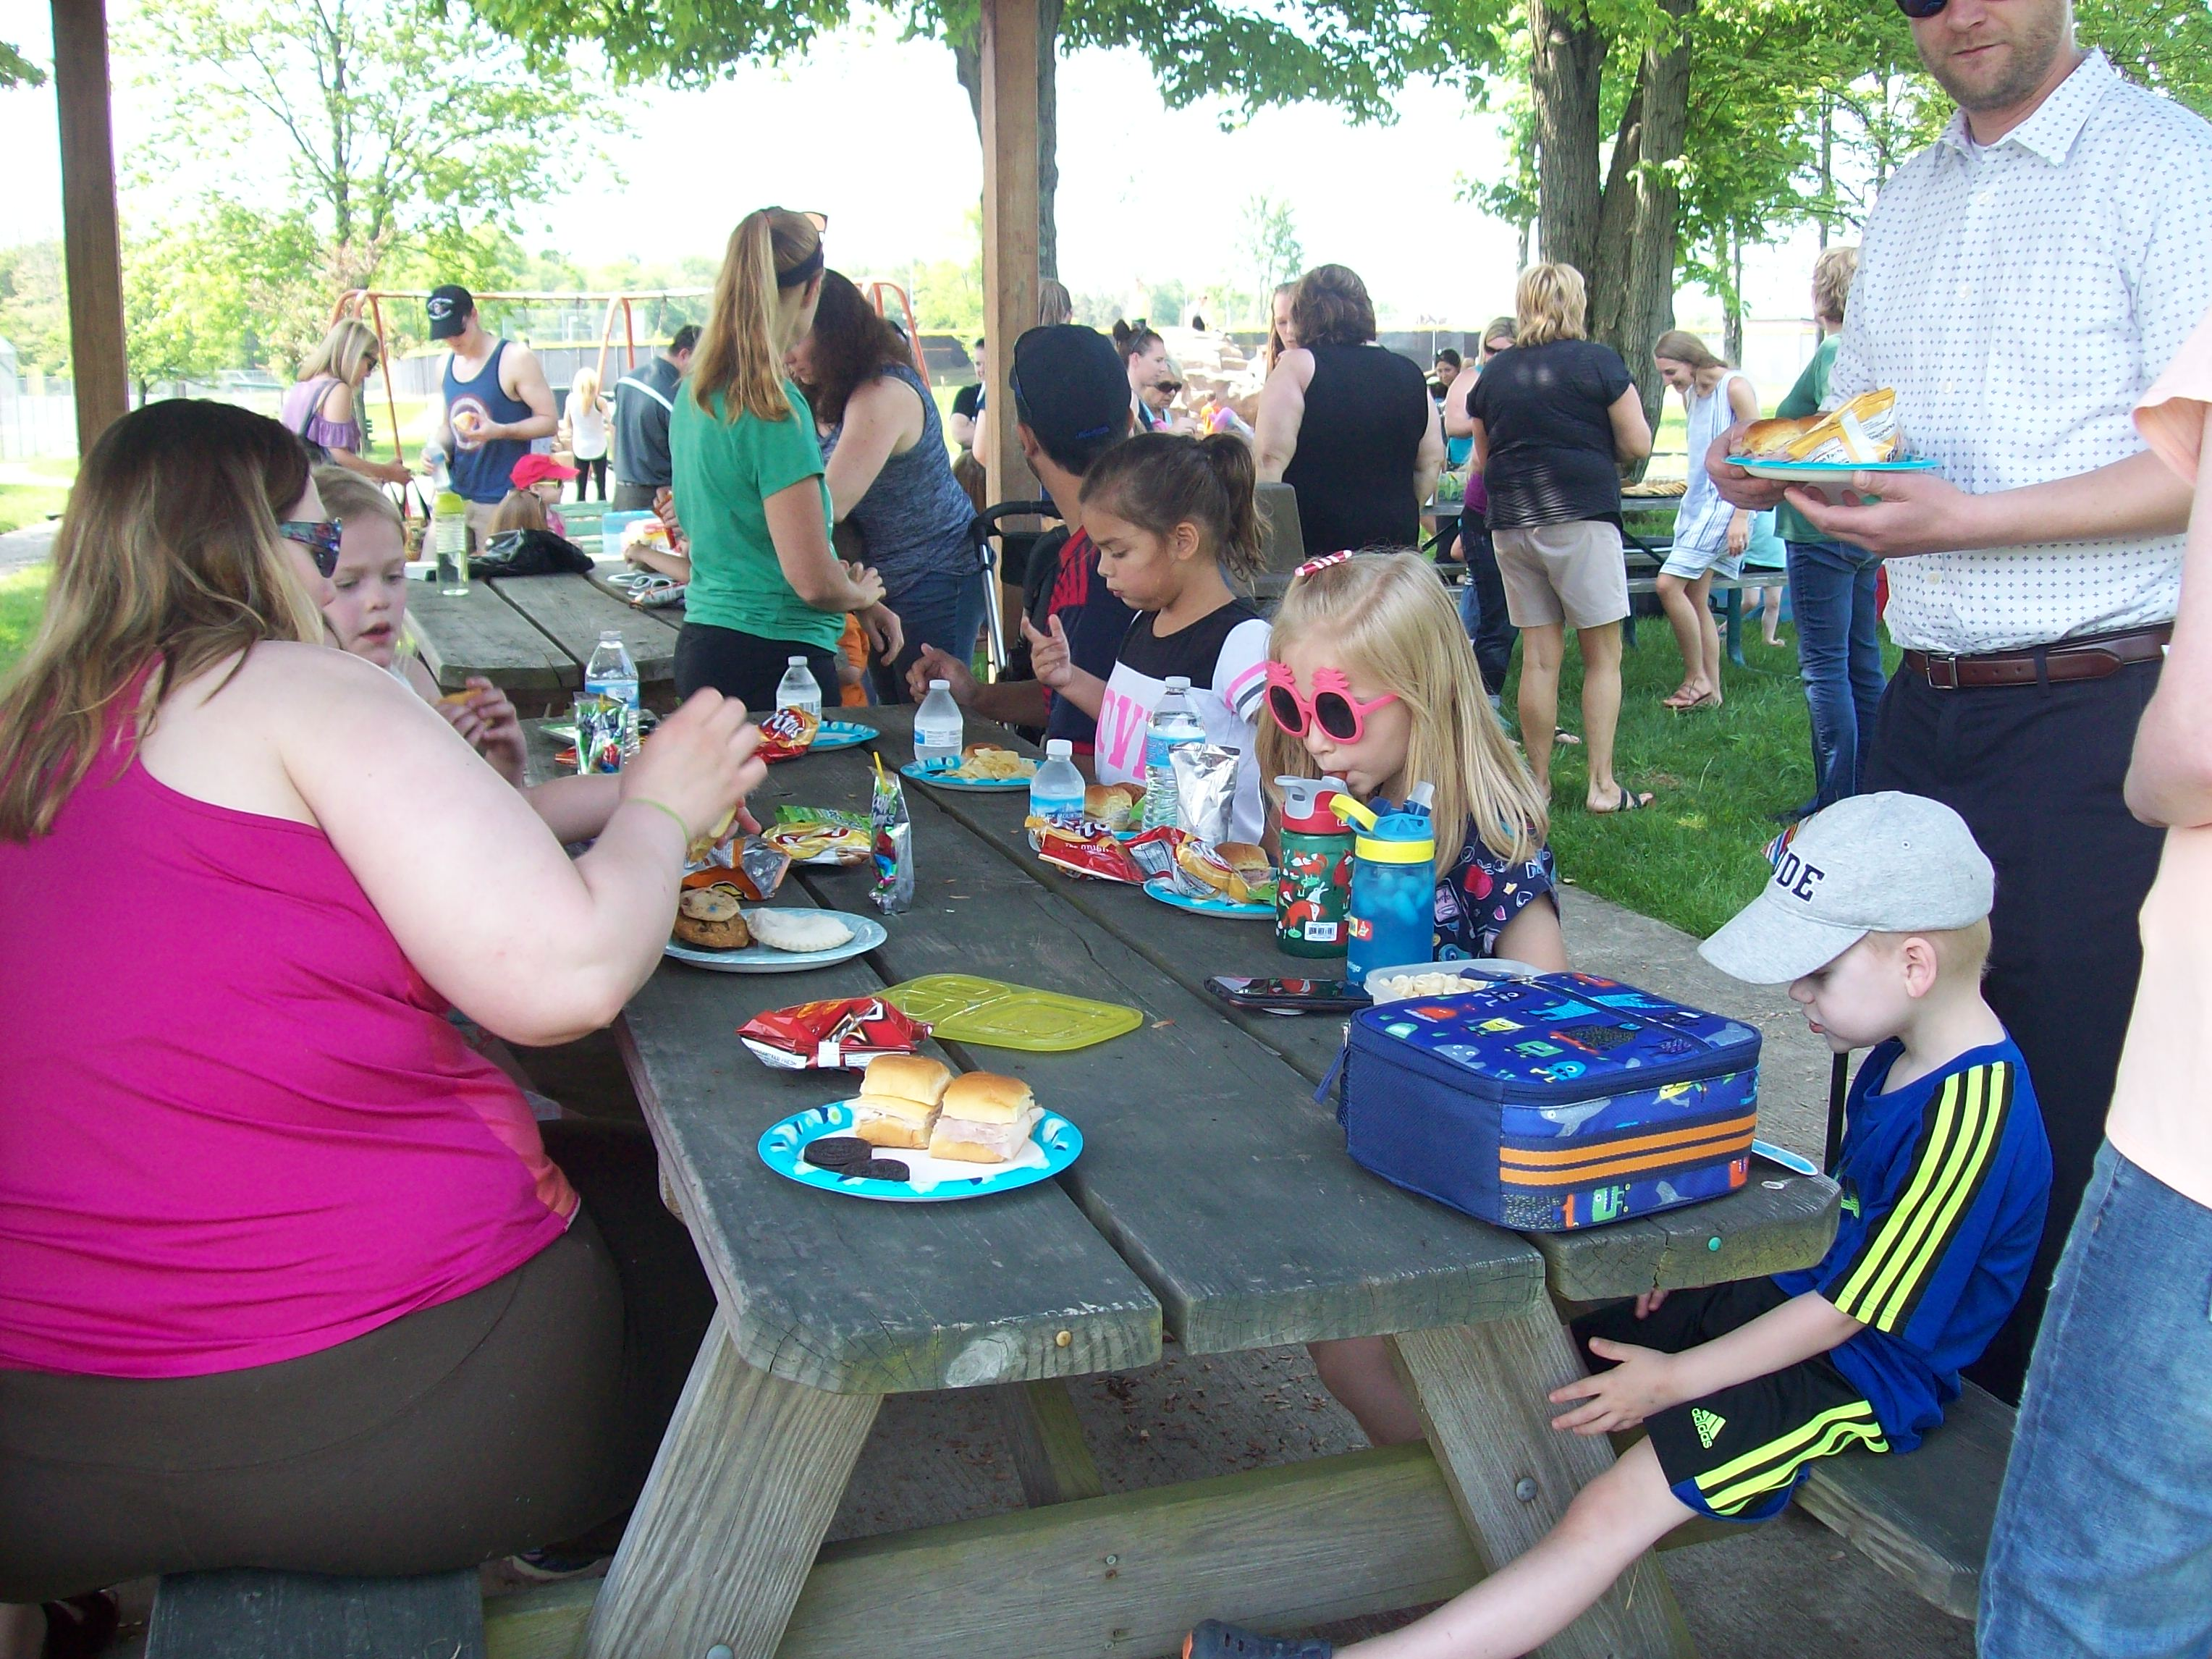 Photos from the Miller Preschool Students Enjoying the End of School Year Picnic at Kiwanis Moore Park Next to the Fire Station in Aurora